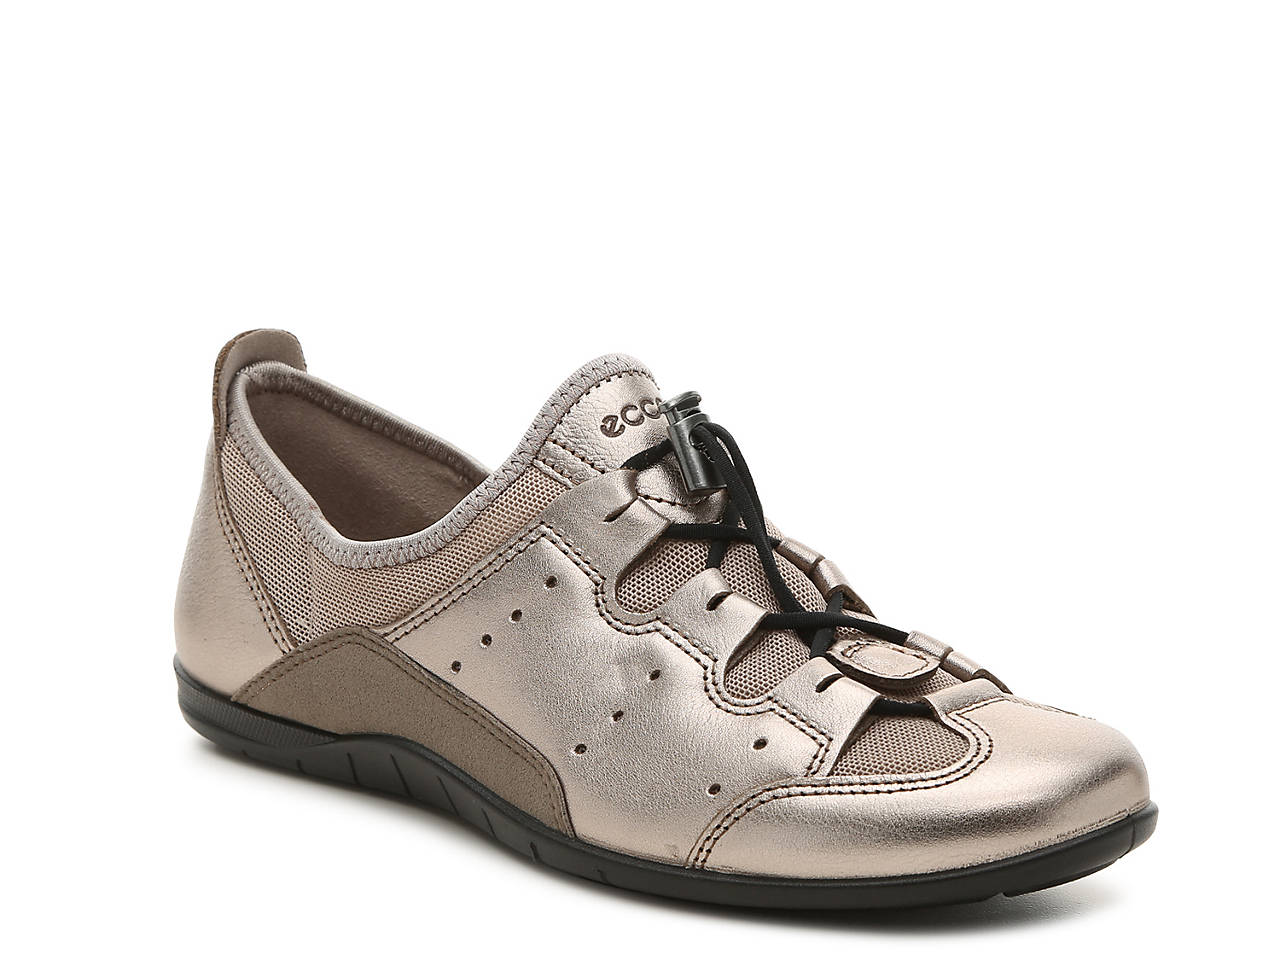 3b32e3543355 ECCO Bluma Sneaker Women s Shoes